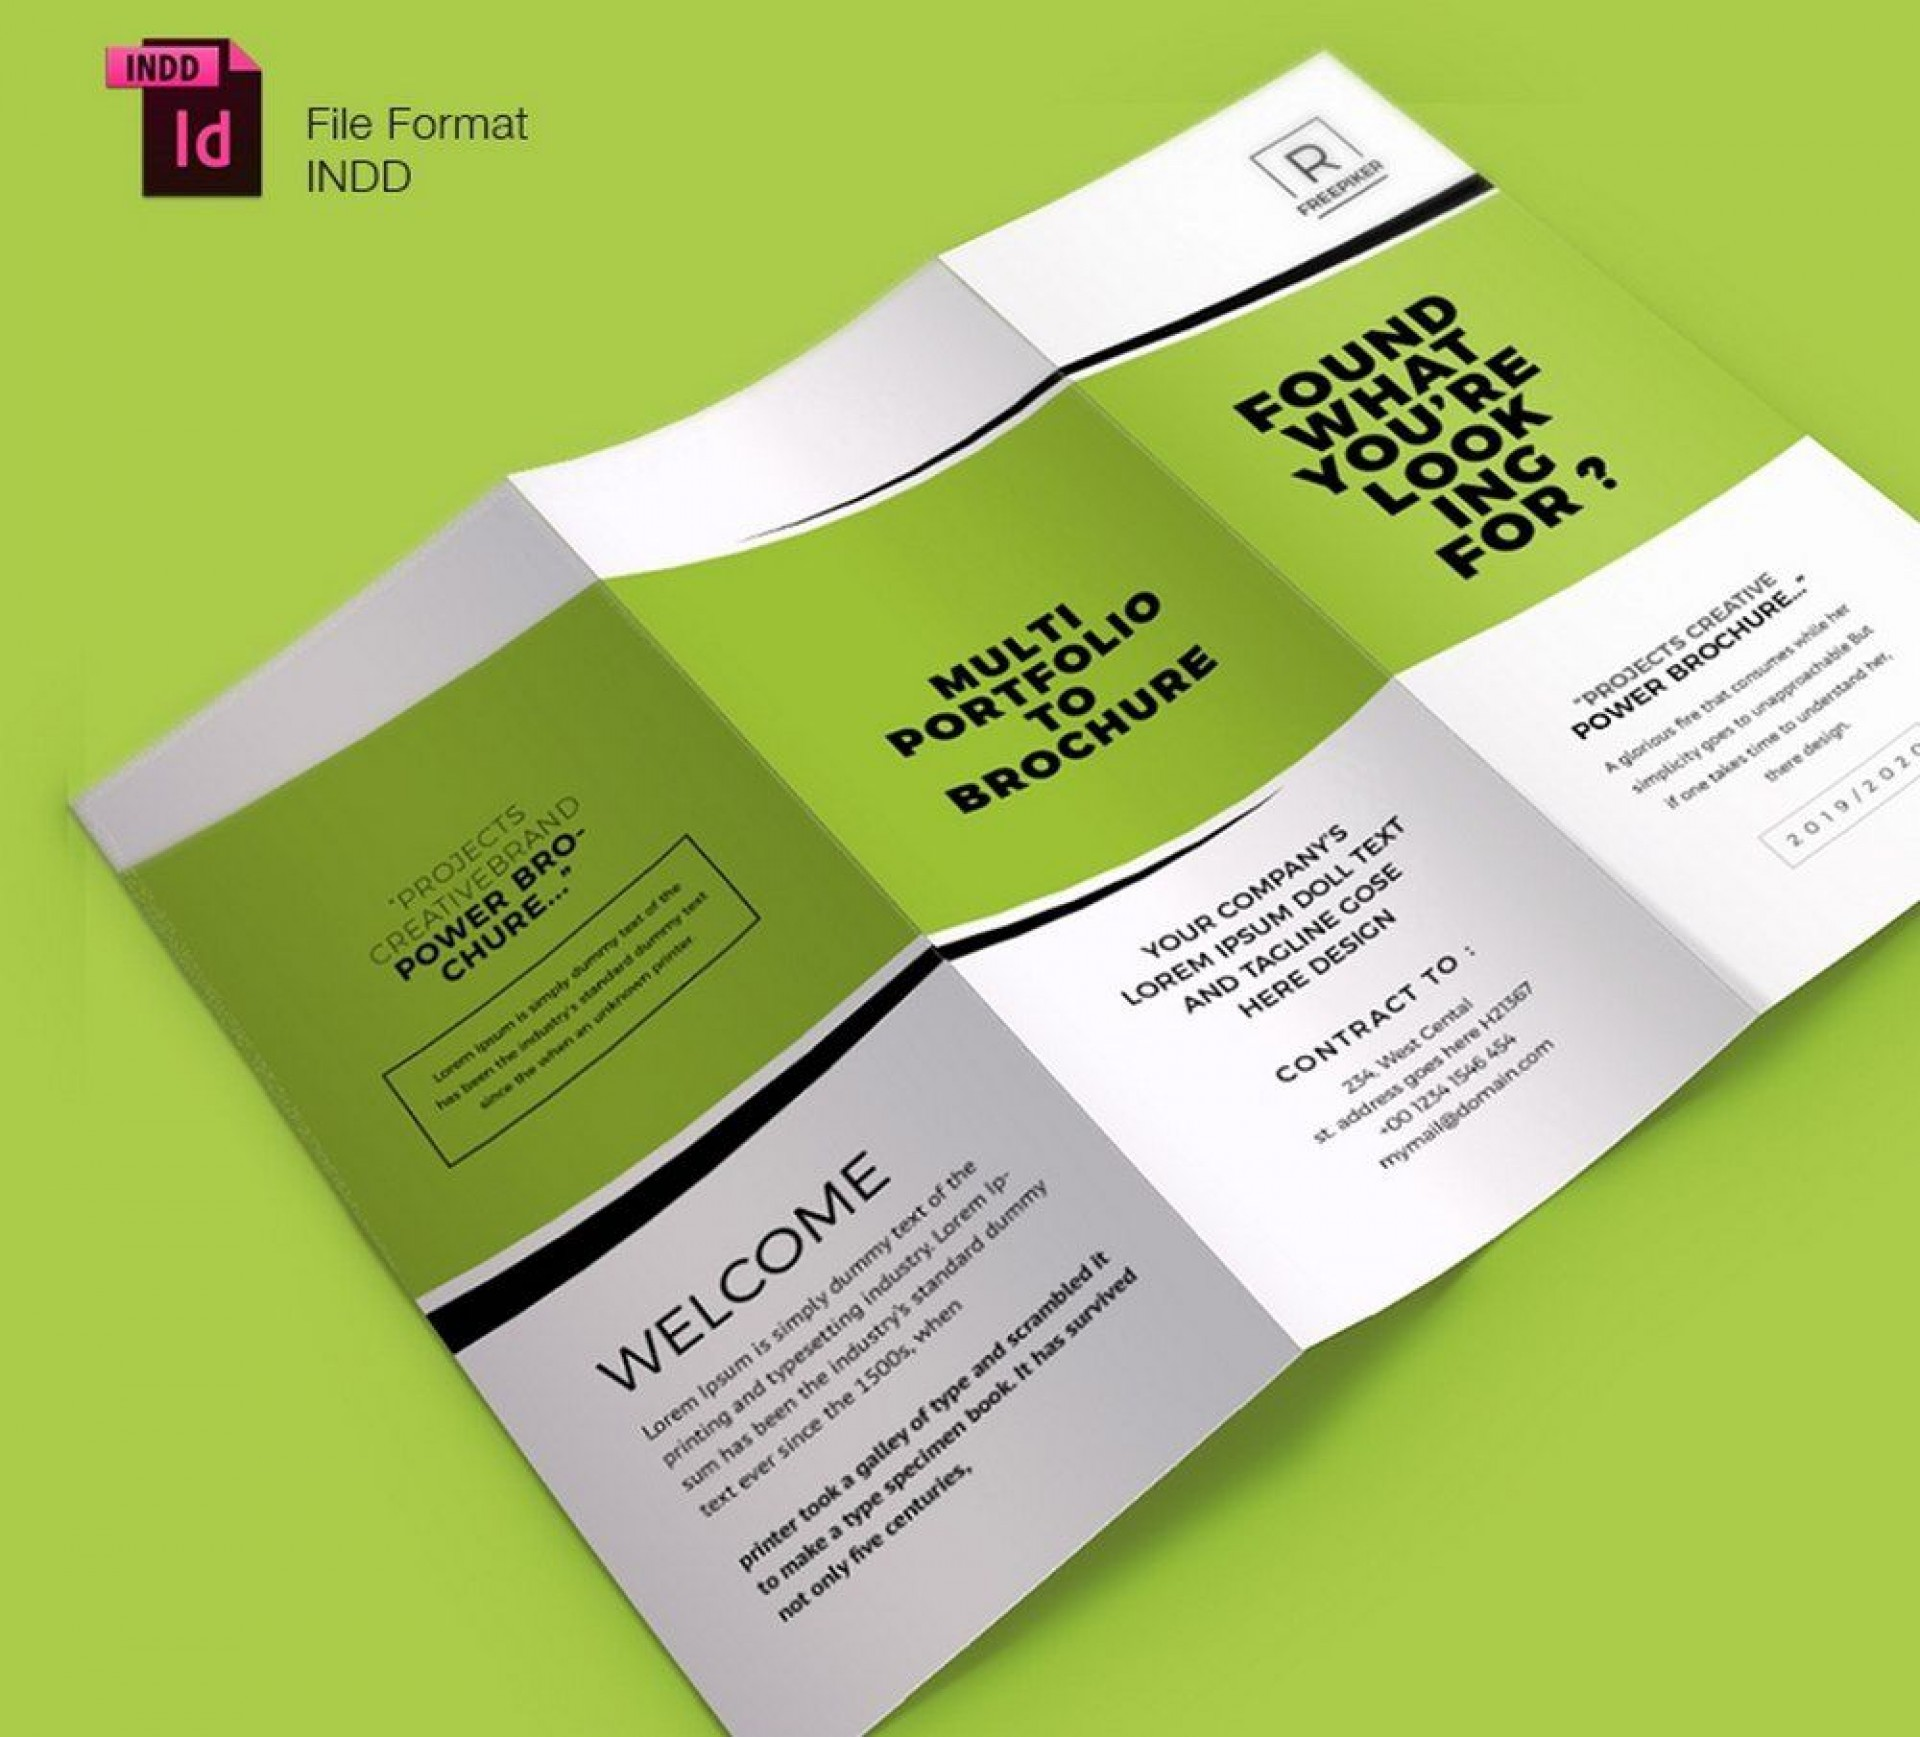 004 Outstanding Template Brochure For Microsoft Word Free High Resolution  Flyer Bowling Tri Fold 20101920